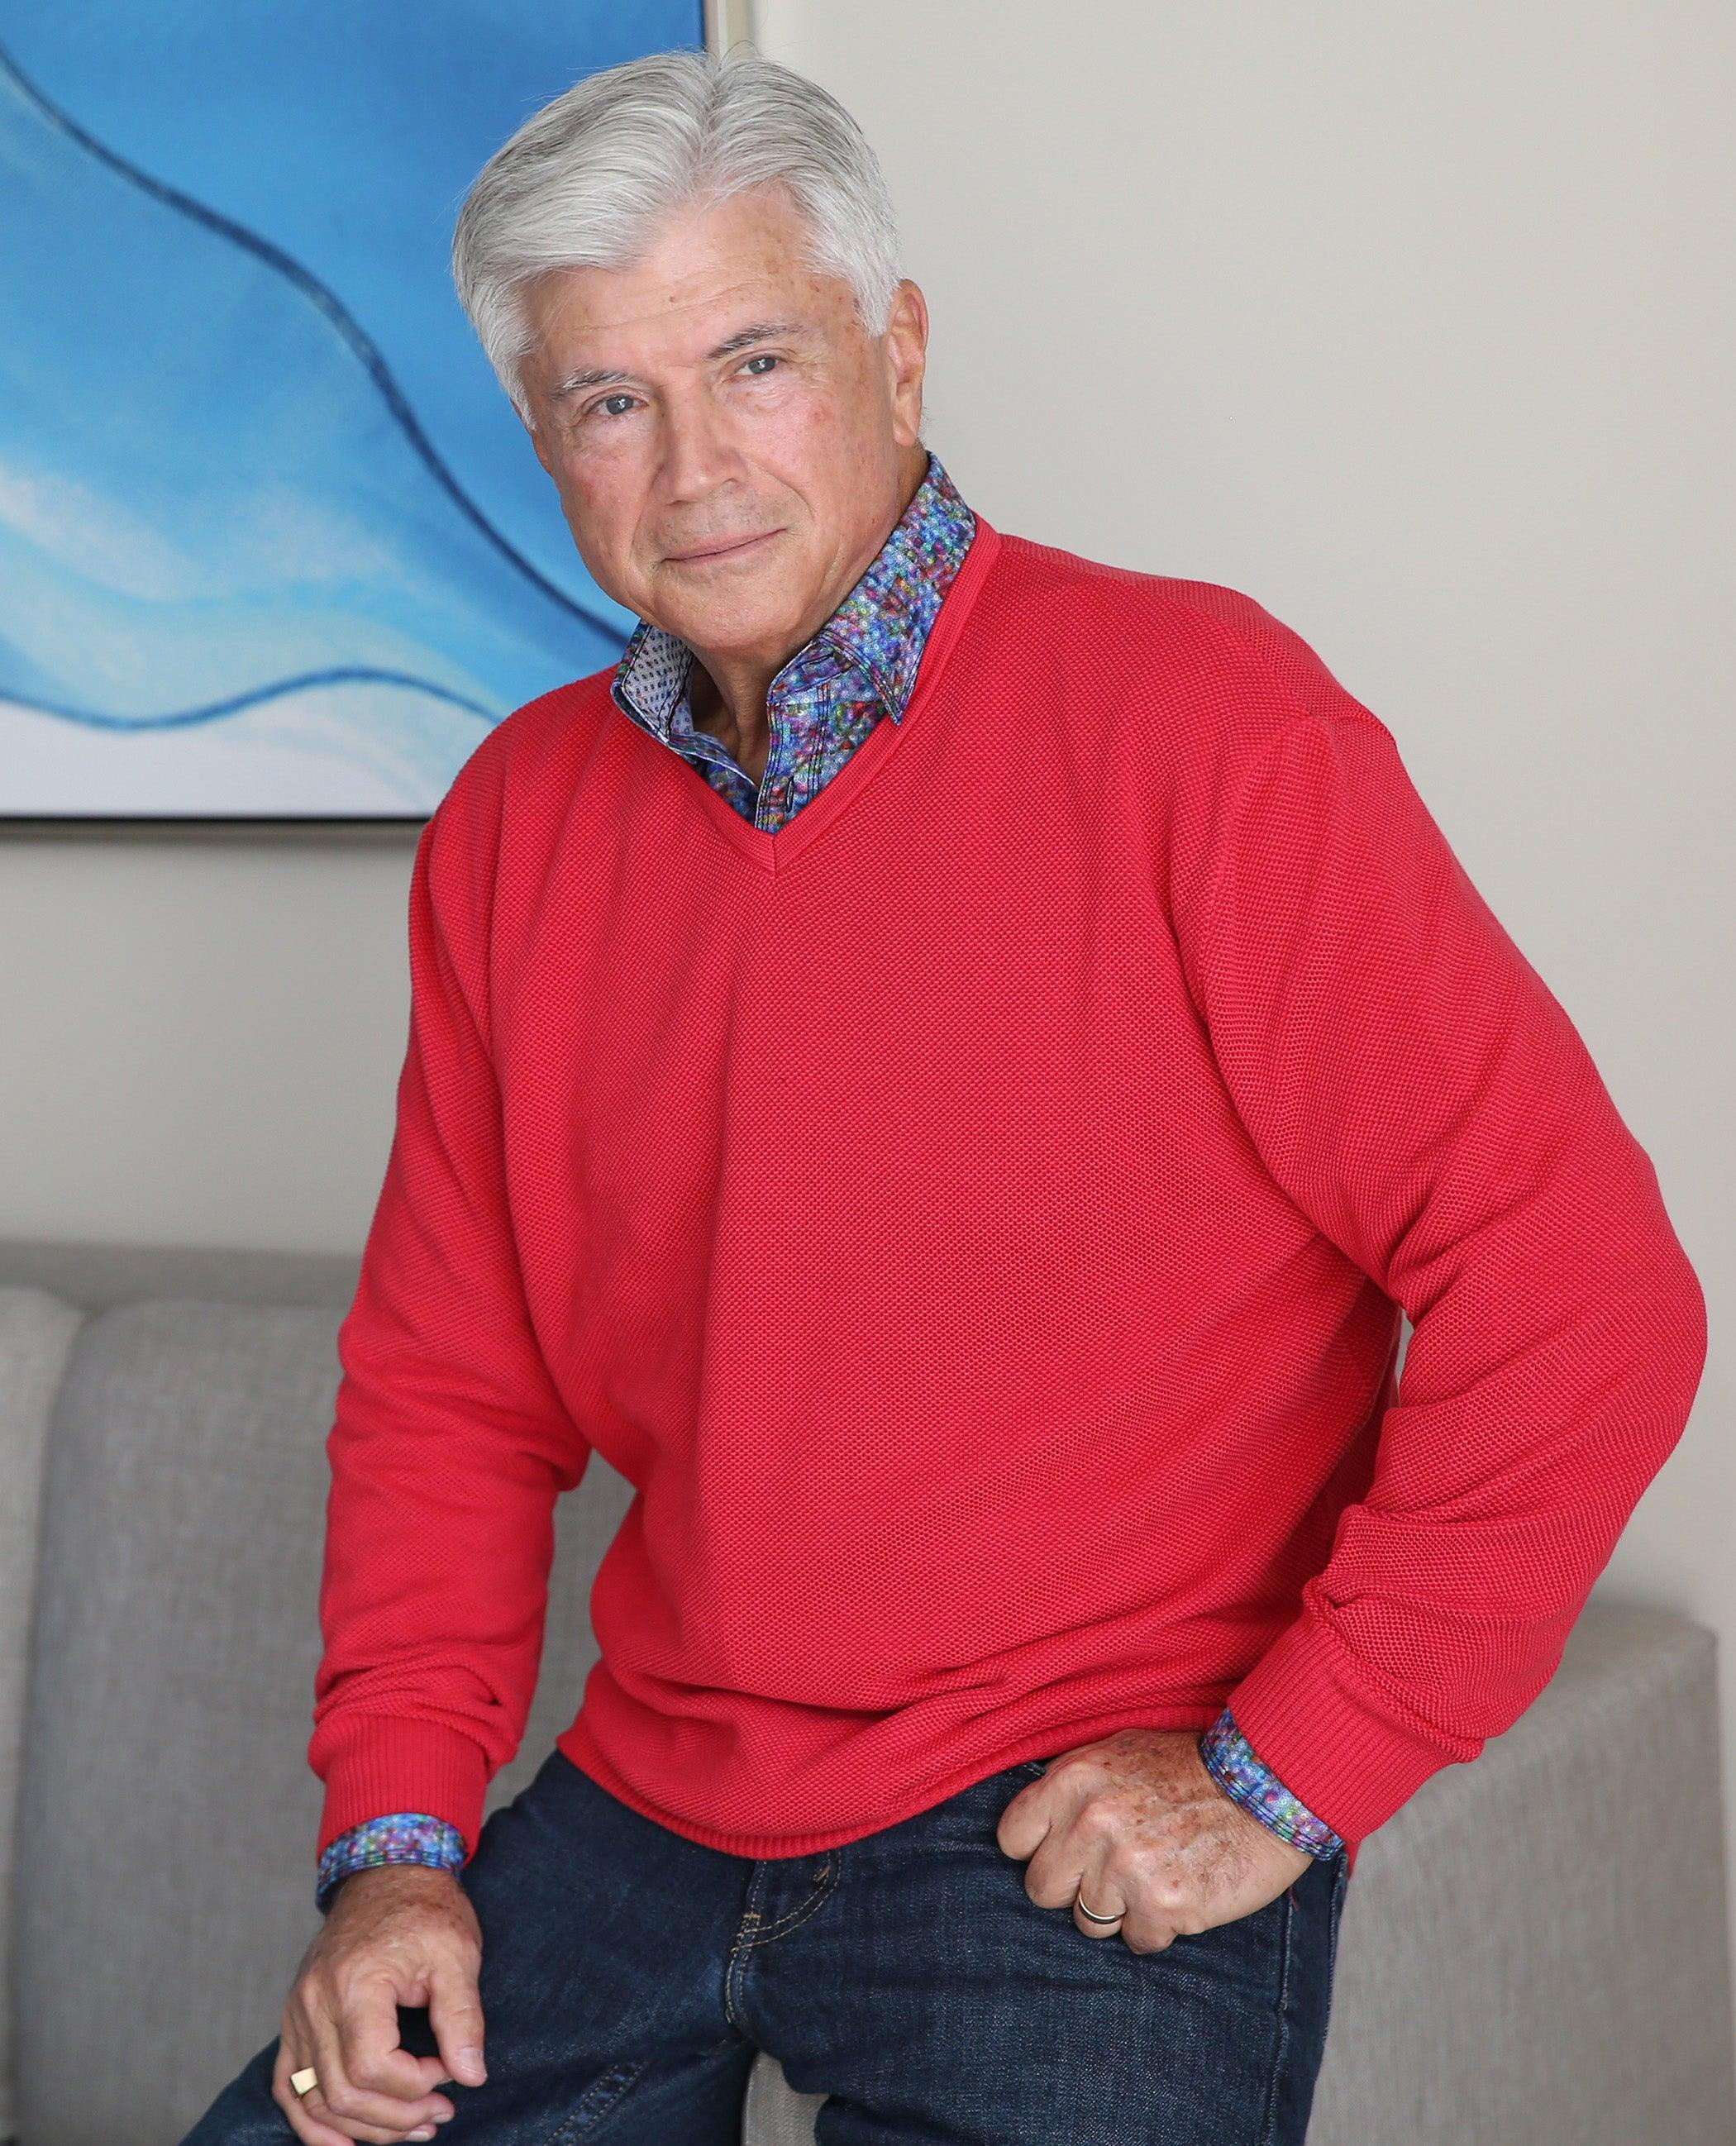 A staple for any wardrobe, the high low, two color yarn, in a popcorn stitch is perfect over a sport shirt or worn alone. Classic style that is timeless. The finest knitting of 100% cotton yarns. Classic fit.    Marcello Classic V Neck